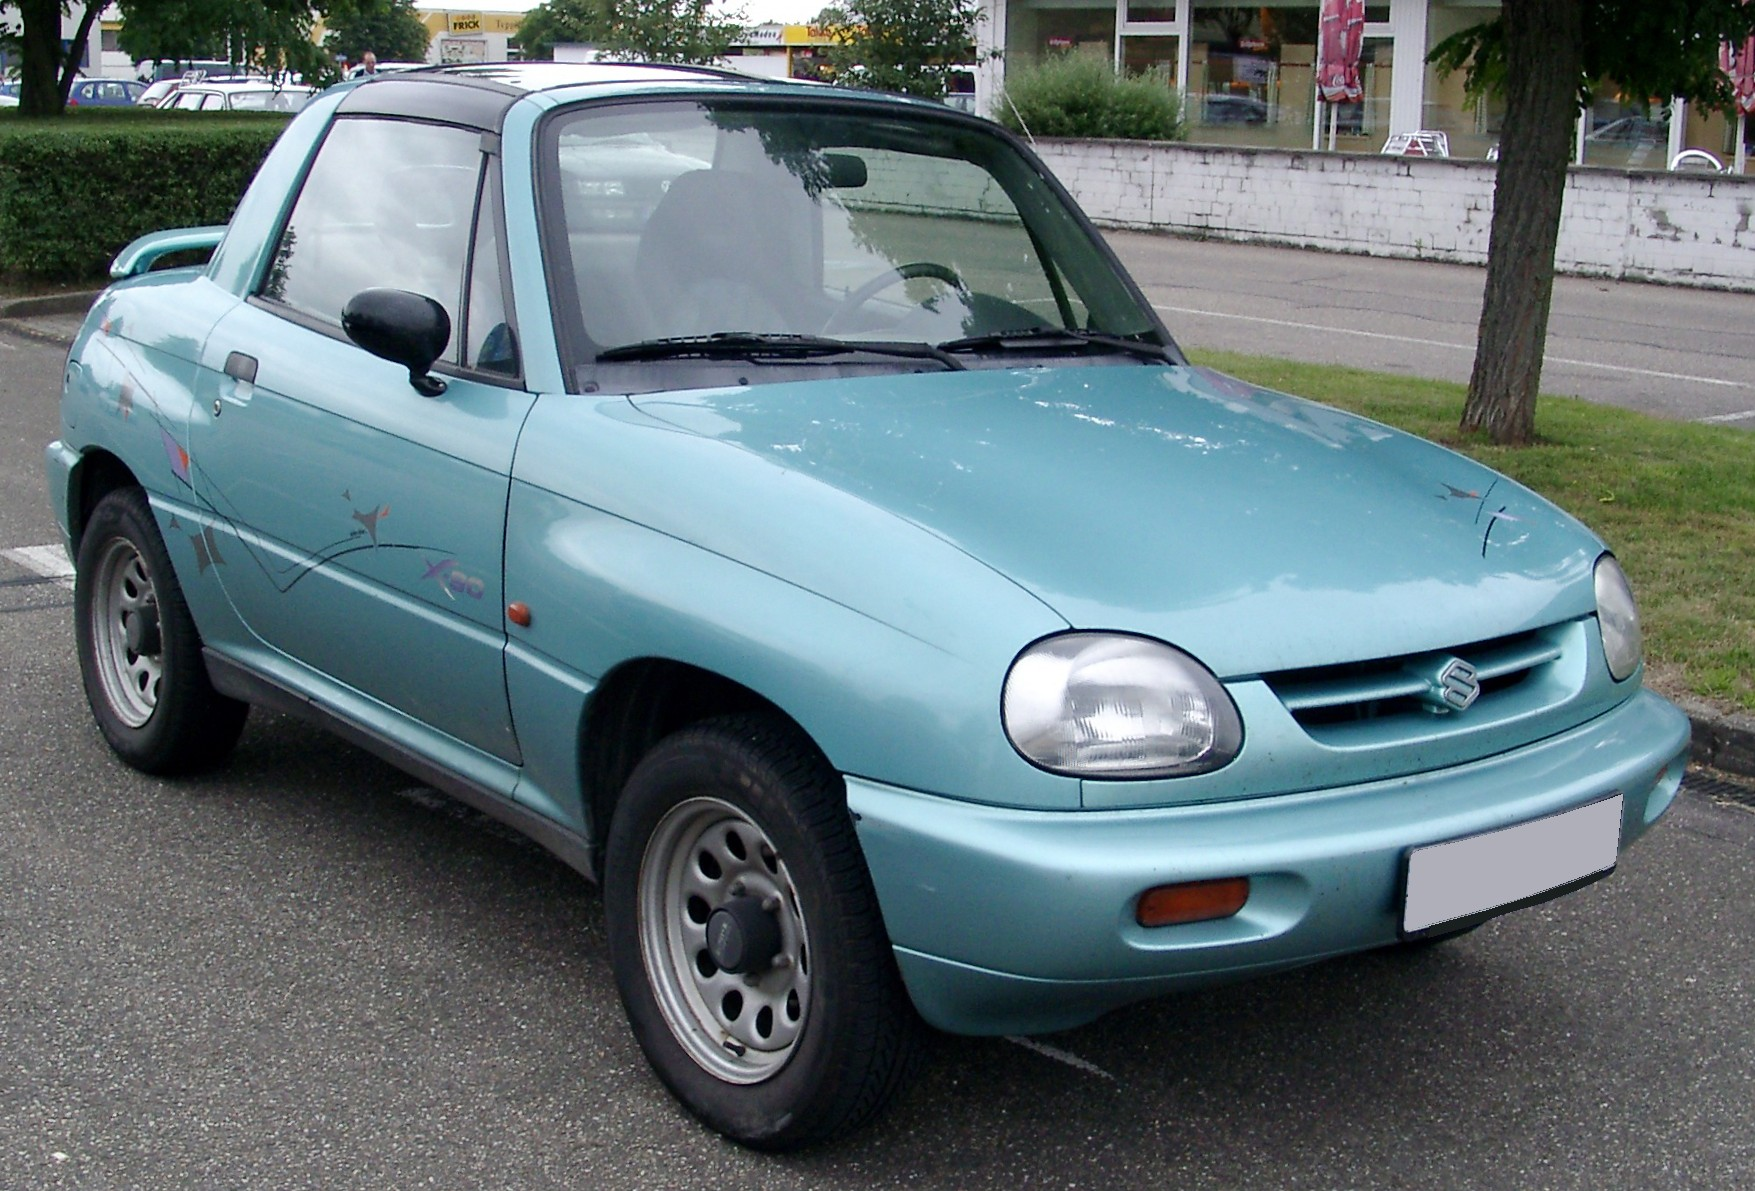 Suzuki x-90 photo - 4